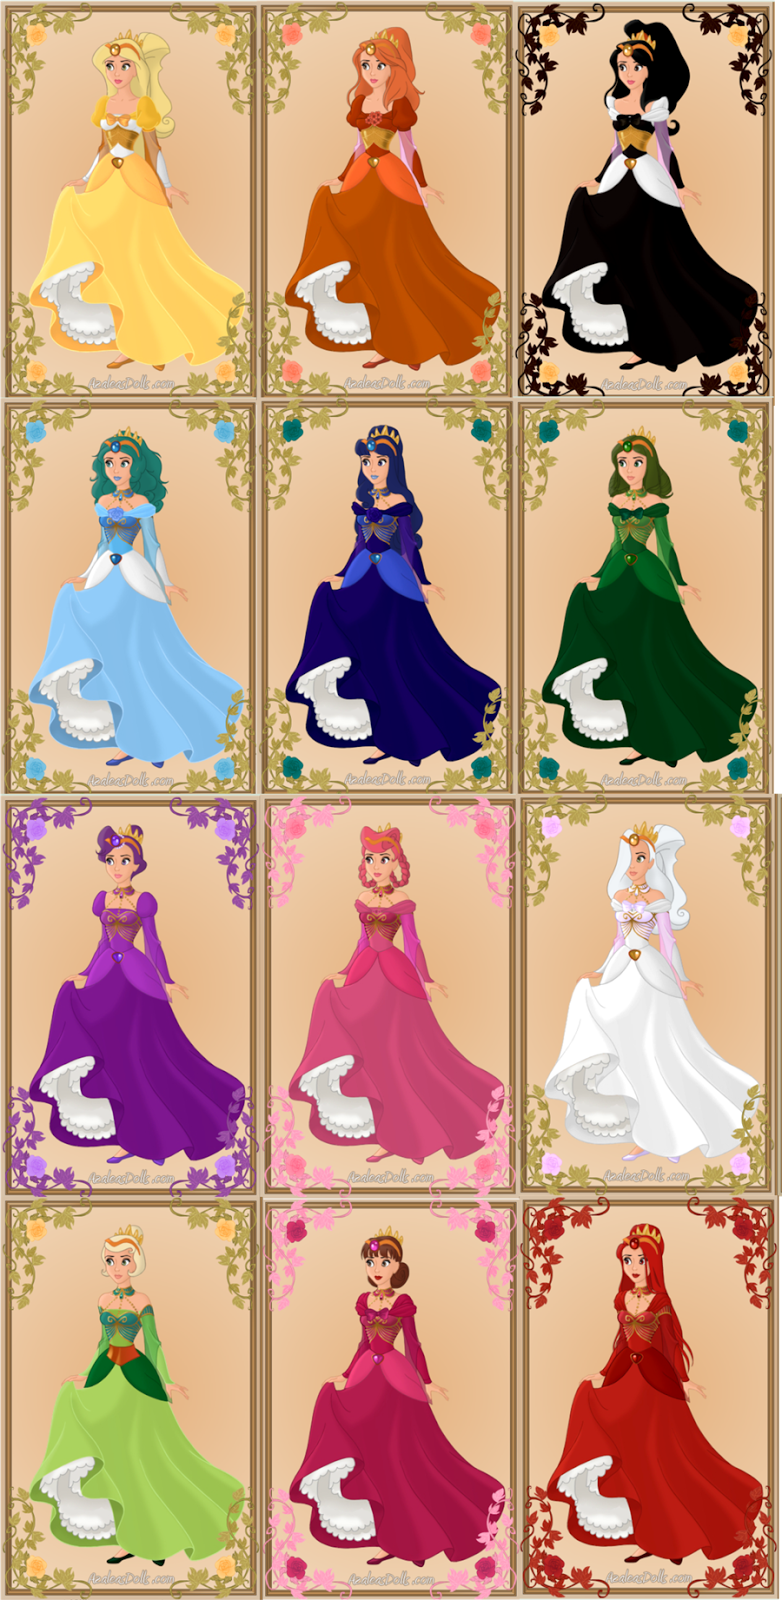 12 dancing princesses names and flowers